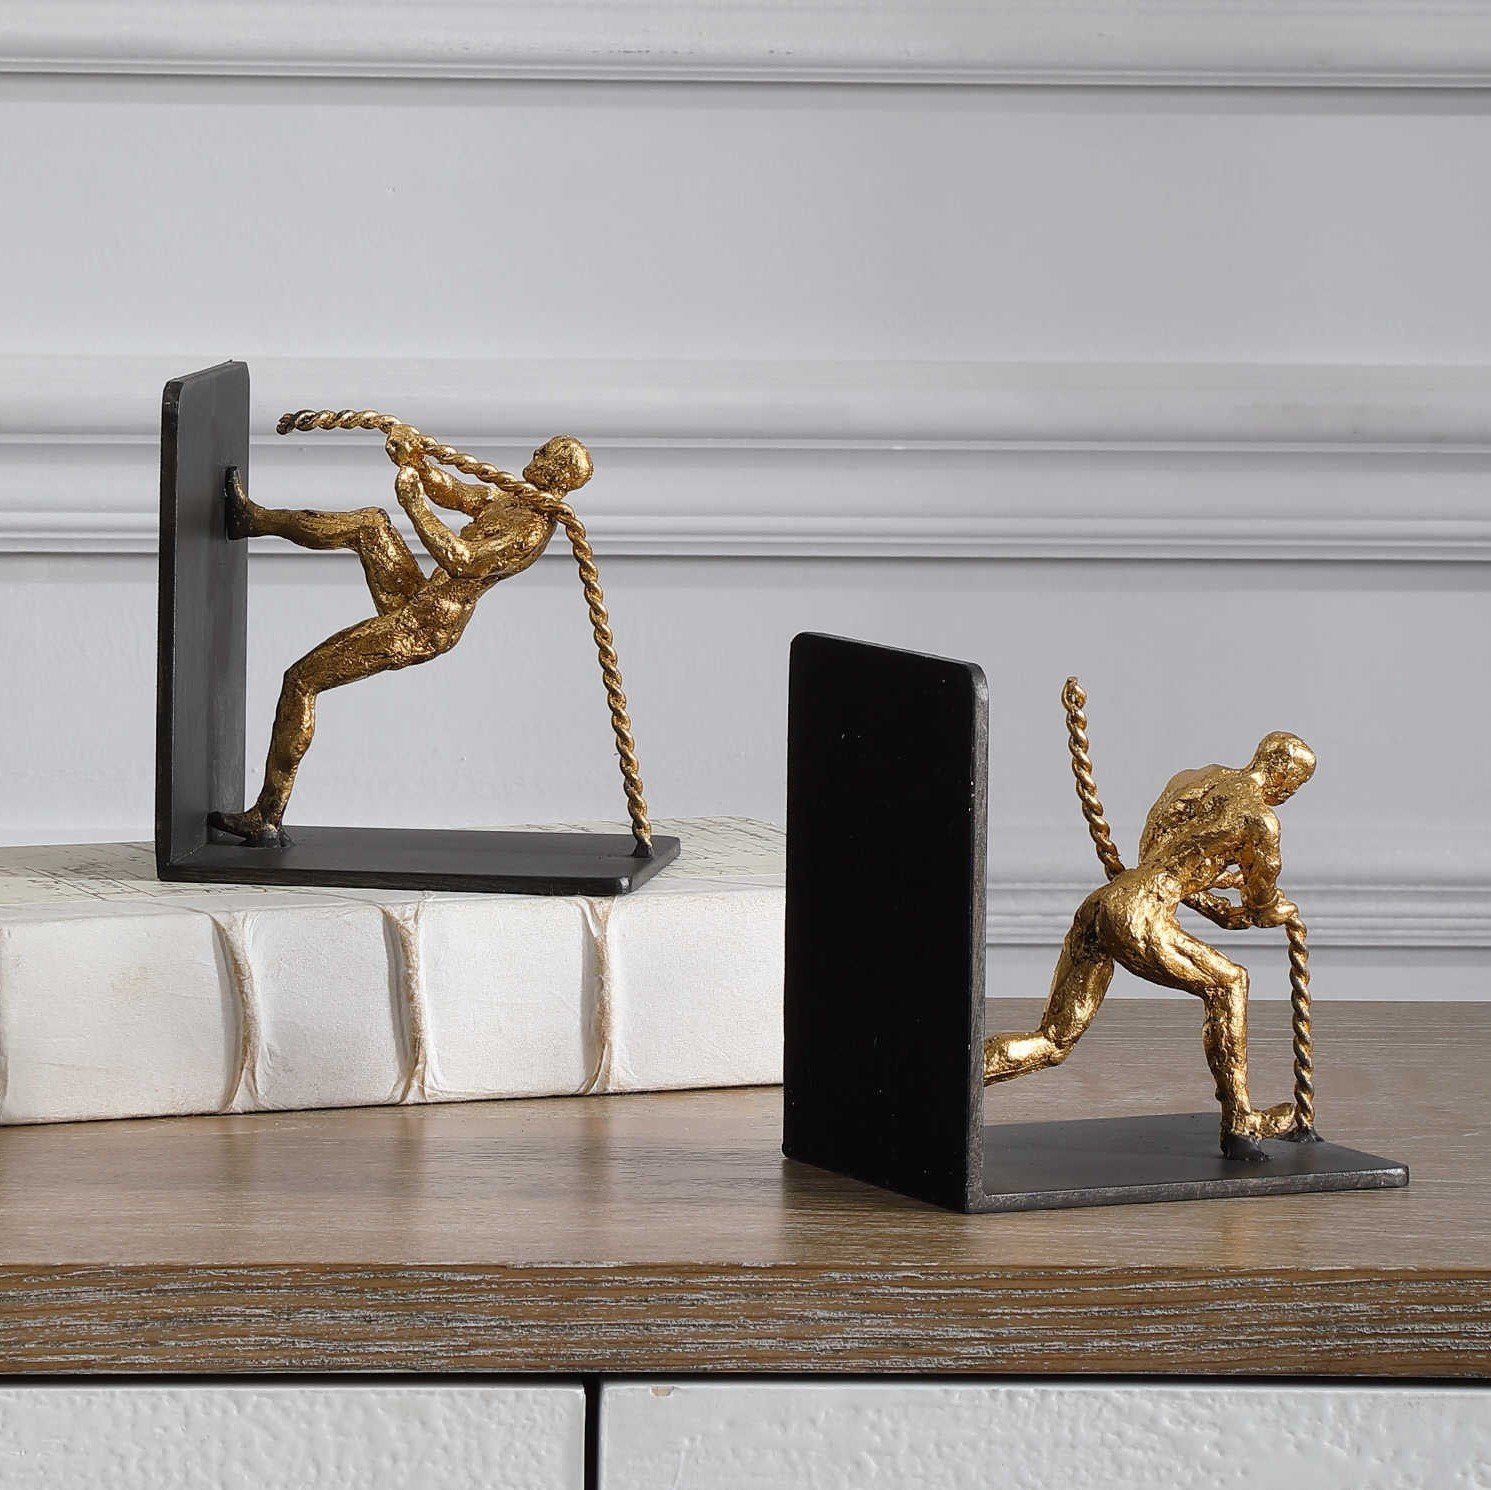 Antique human figurine bookends plated in gold are charming and unique